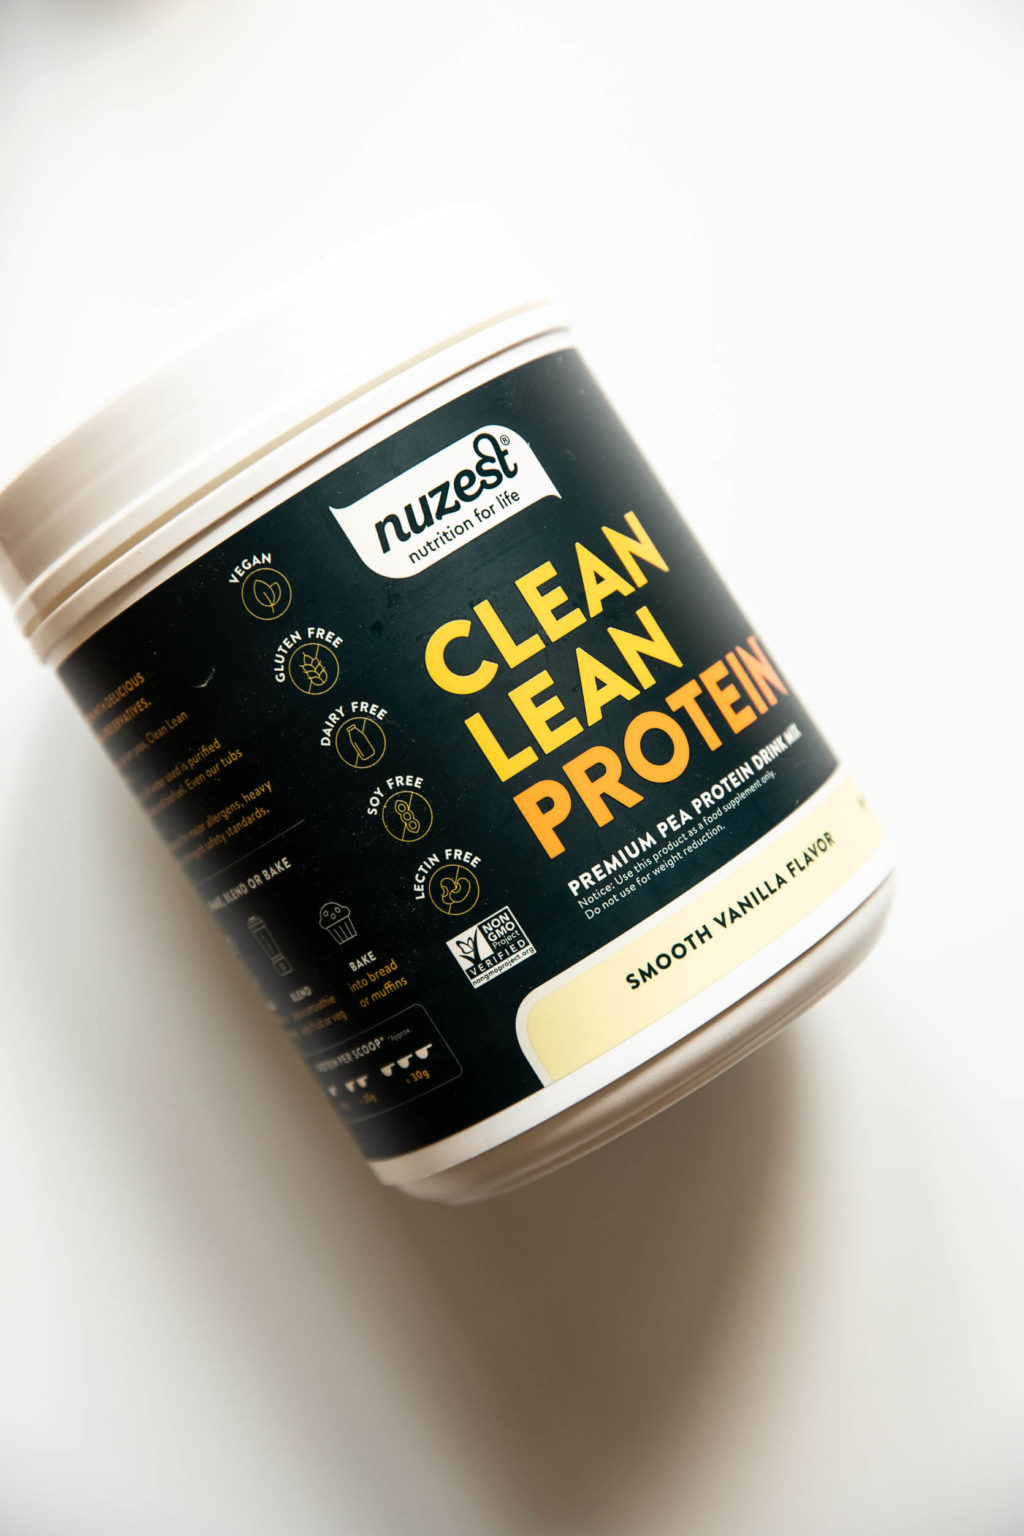 A container of plant based protein powder.